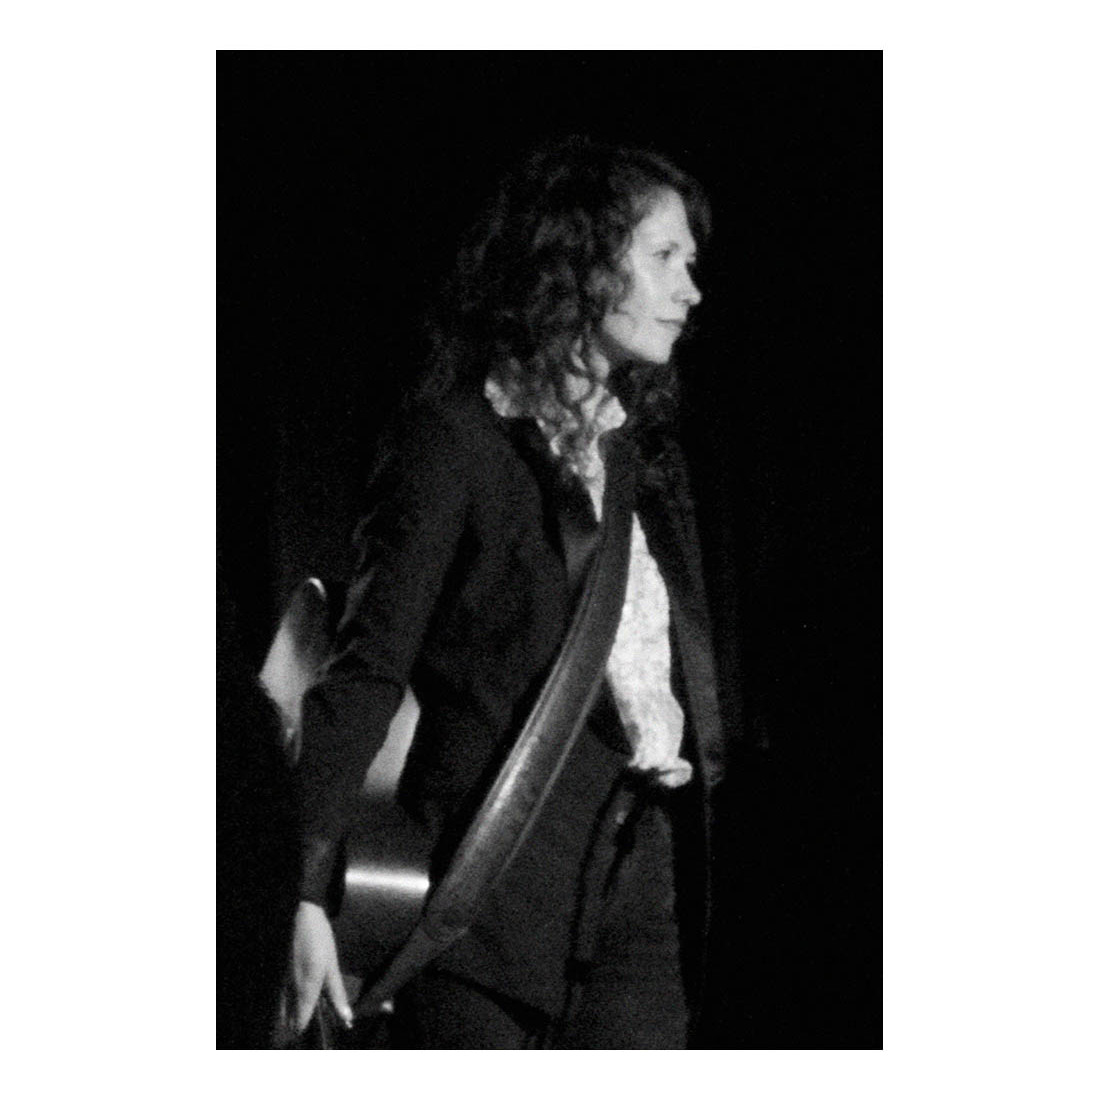 Sarah Lee Guthrie, Woden, ACT, 2013    Sarah Lee Guthrie was performing with her father, Arlo, in Woden, Canberra. I was surprised to notice a strong resemblance to her grandfather, Woody Guthrie, similar angles in her face.